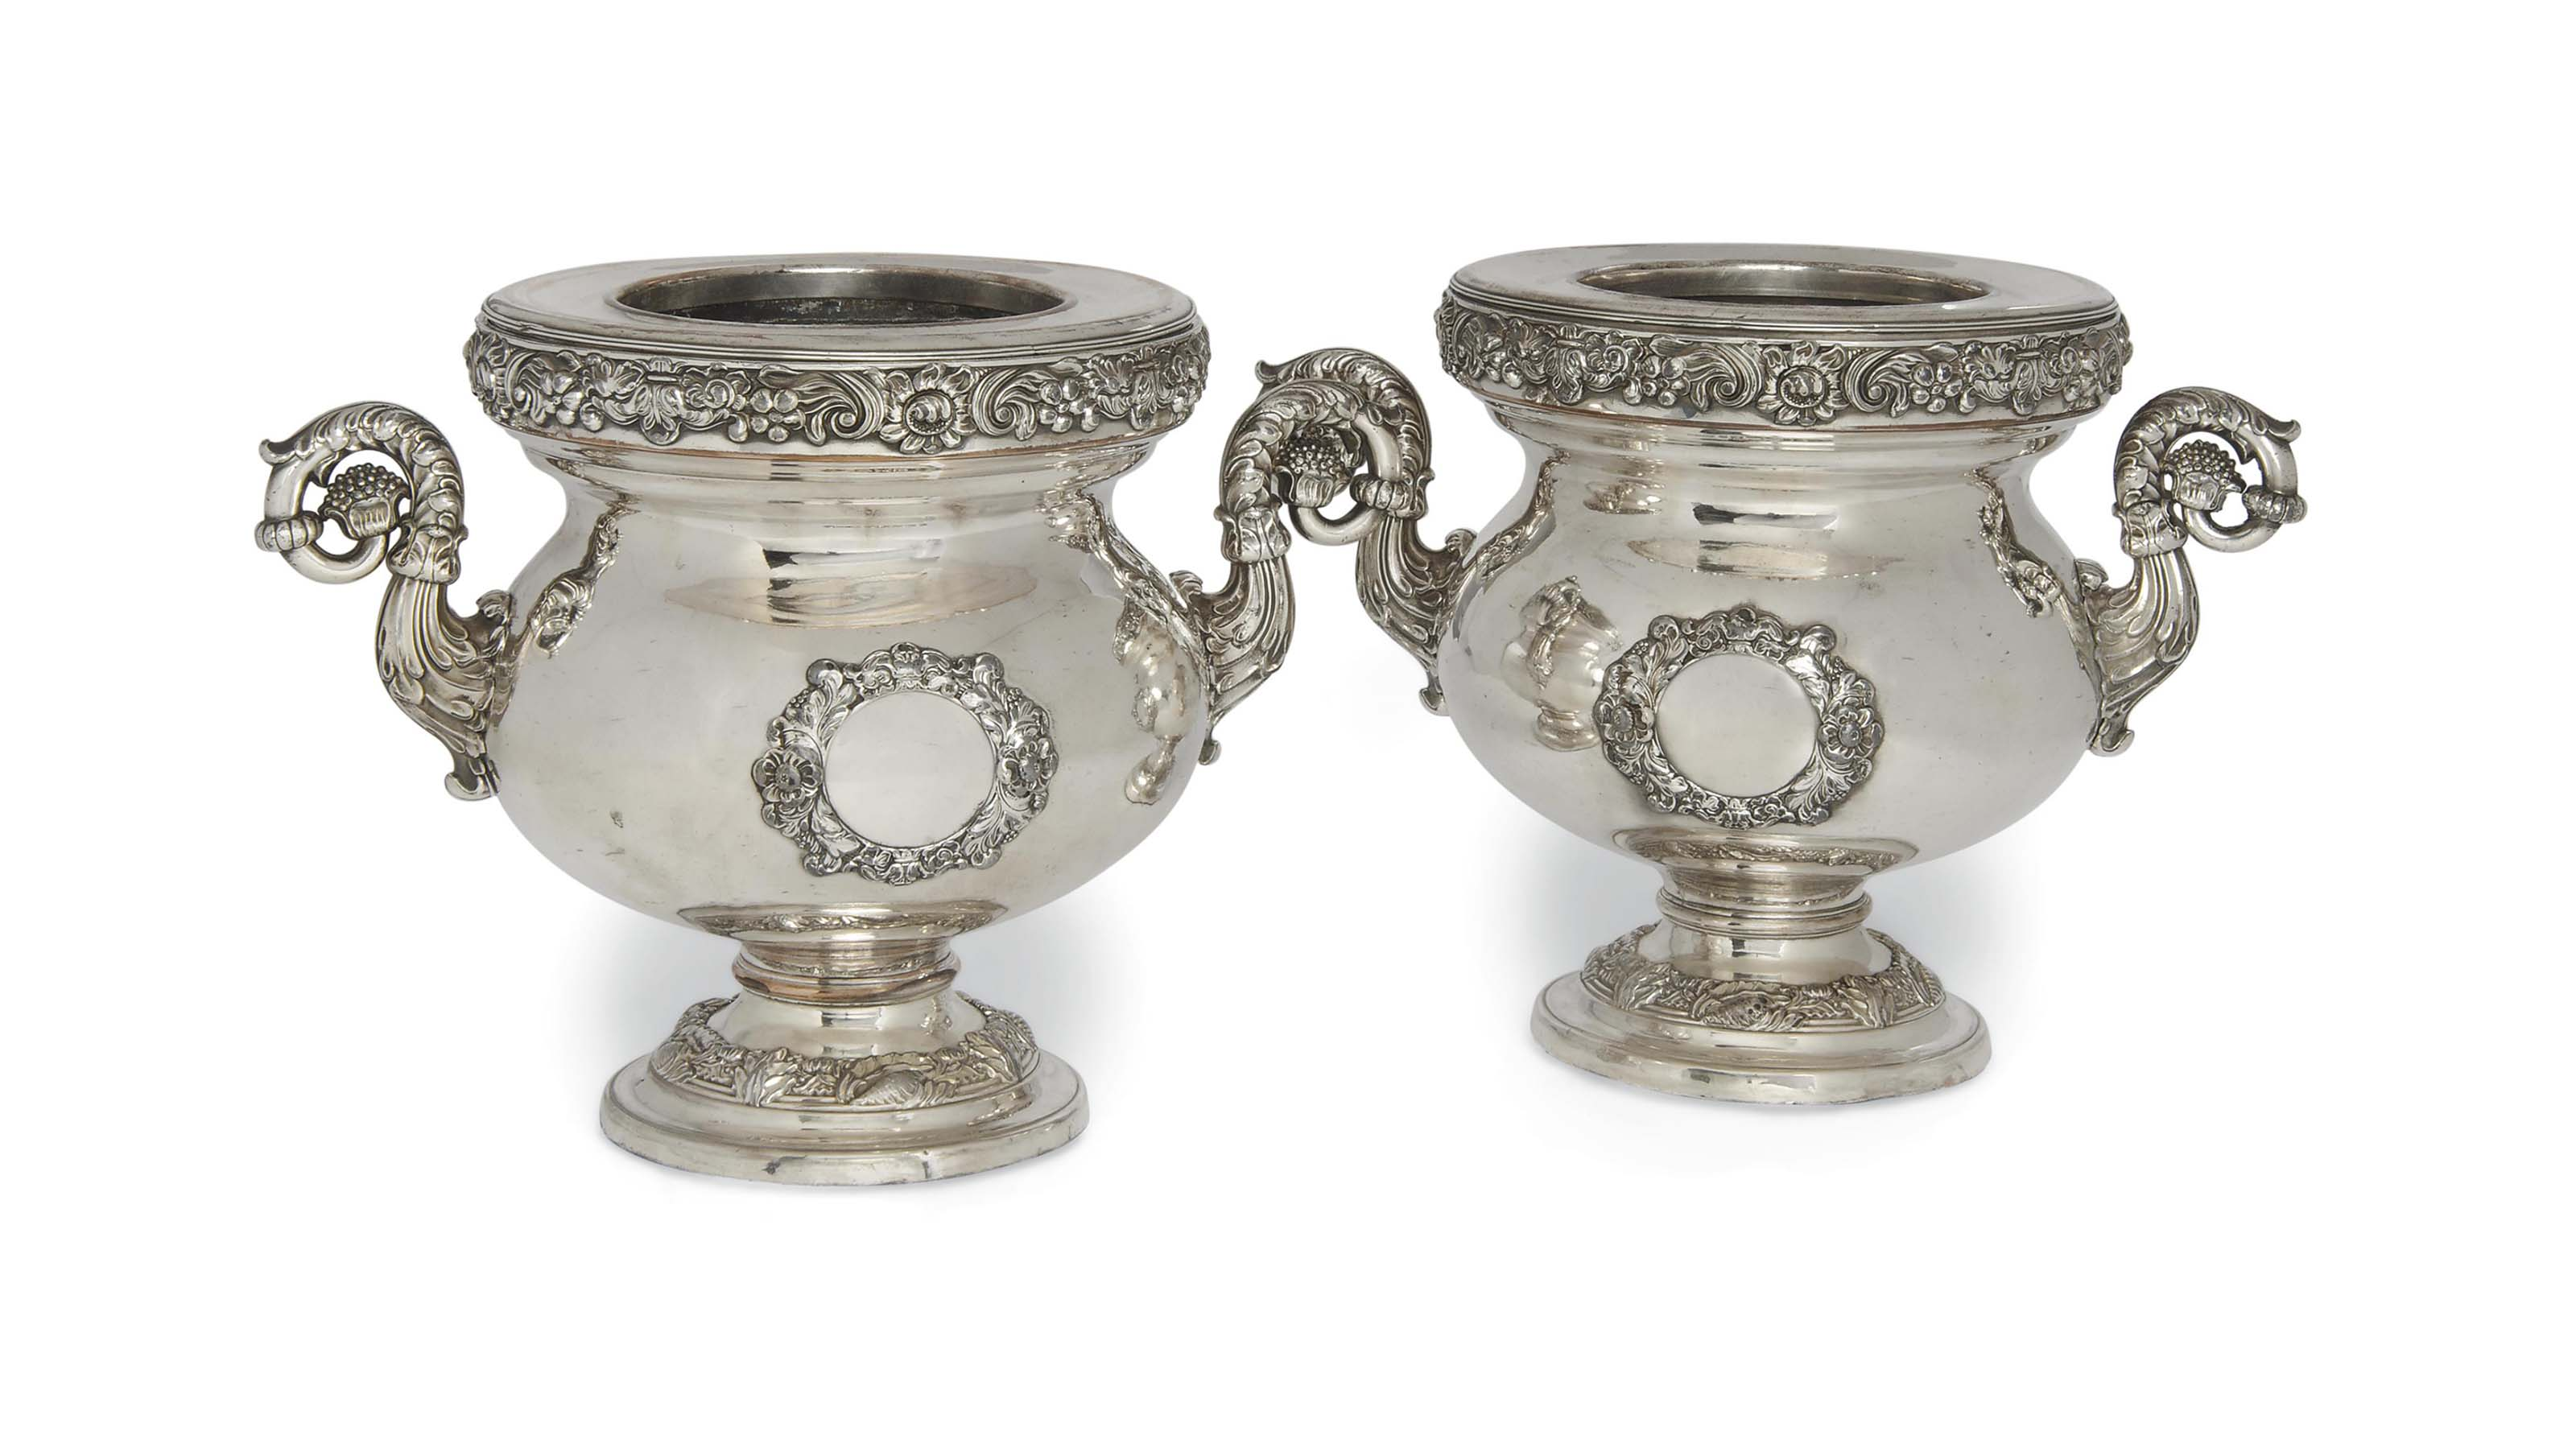 A PAIR OF OLD SHEFFIELD PLATE